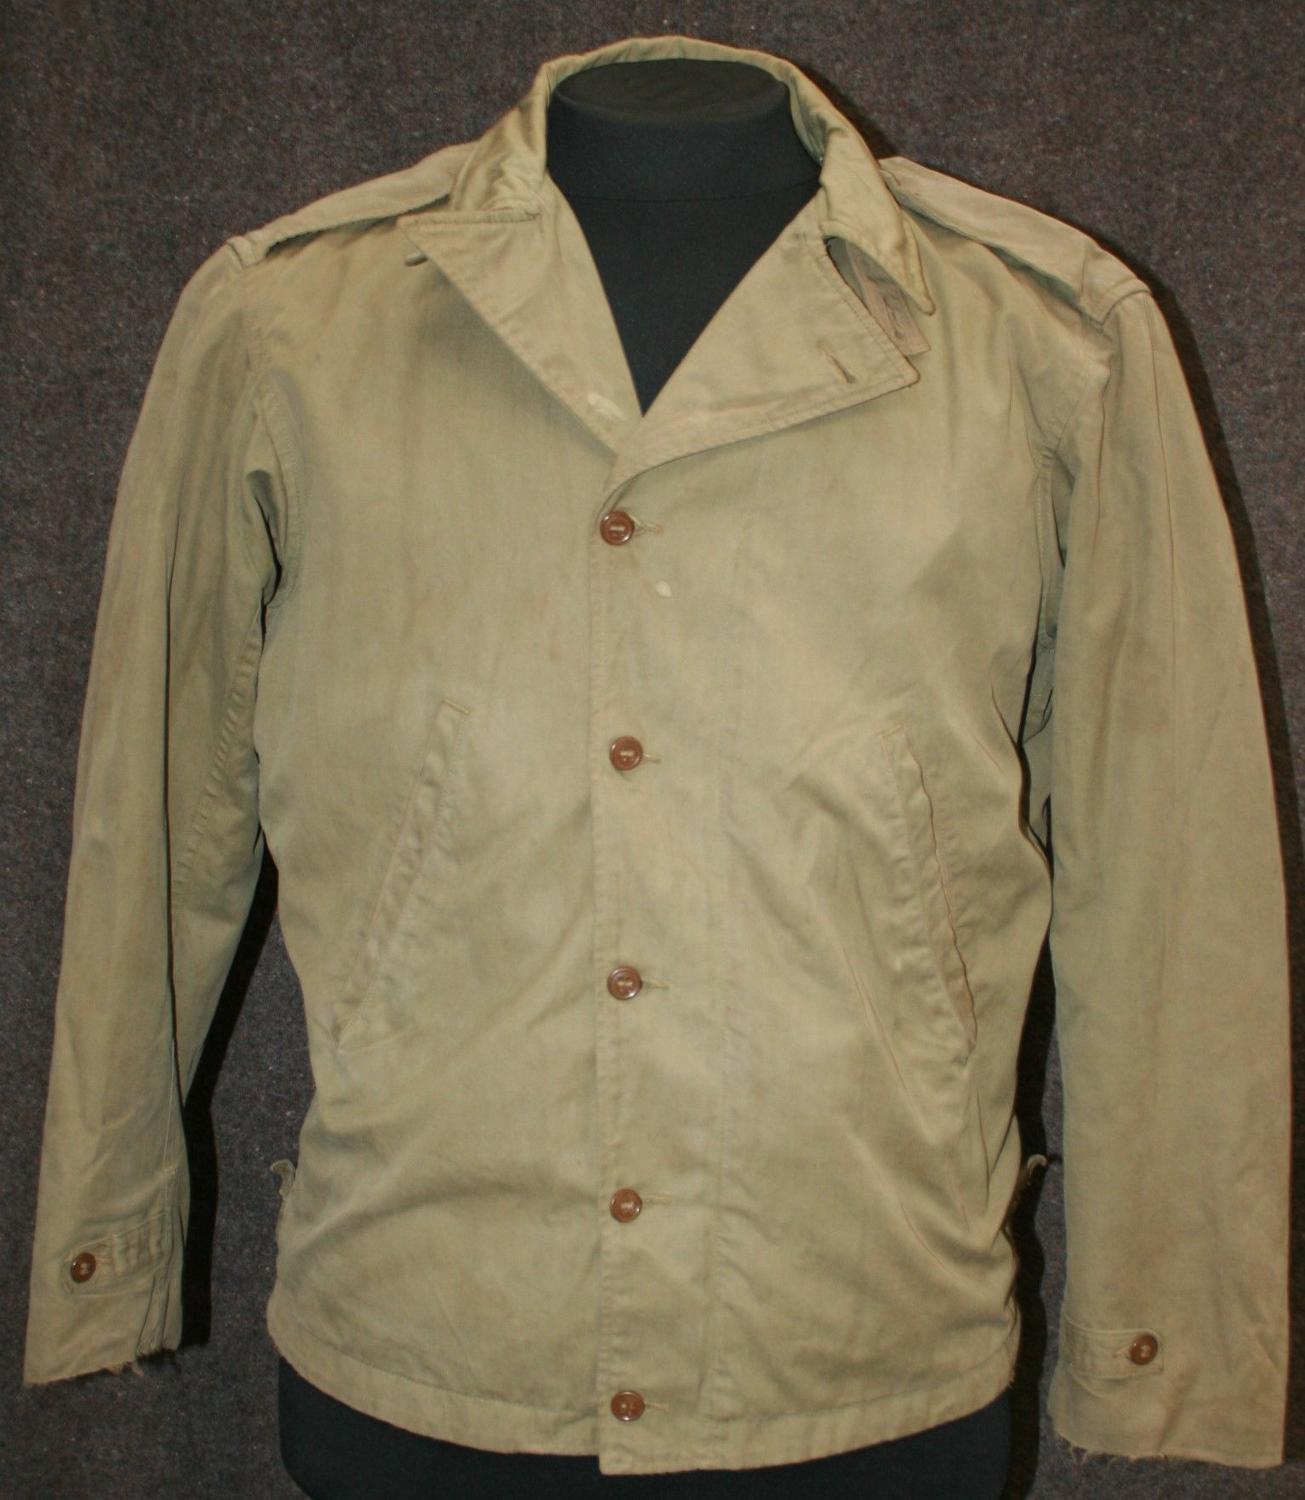 A WWII US ARMY M1941 JACKET